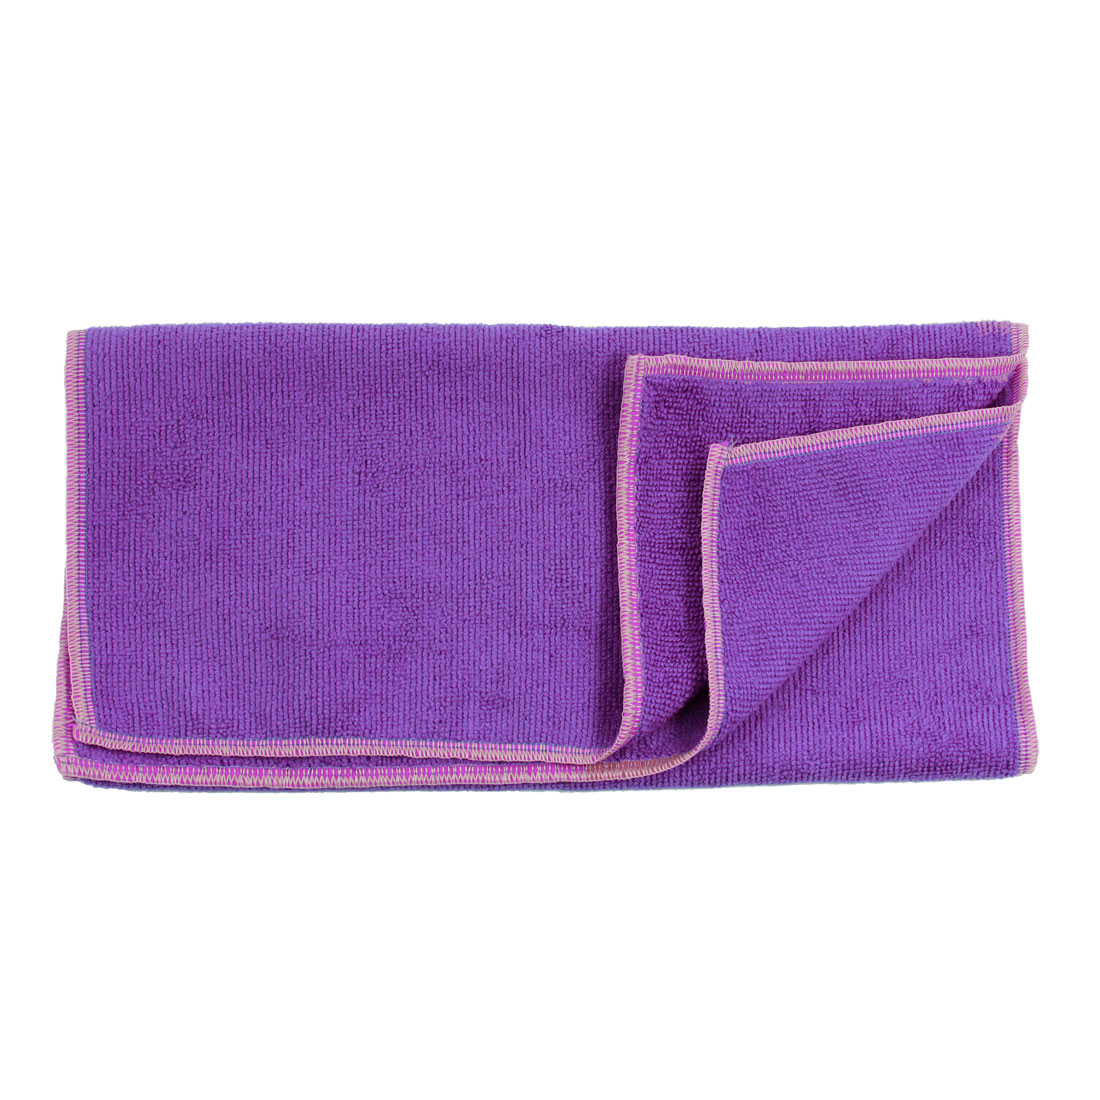 Purple Microfiber Car Door Glass Wash Clean Towel 63 x 32cm